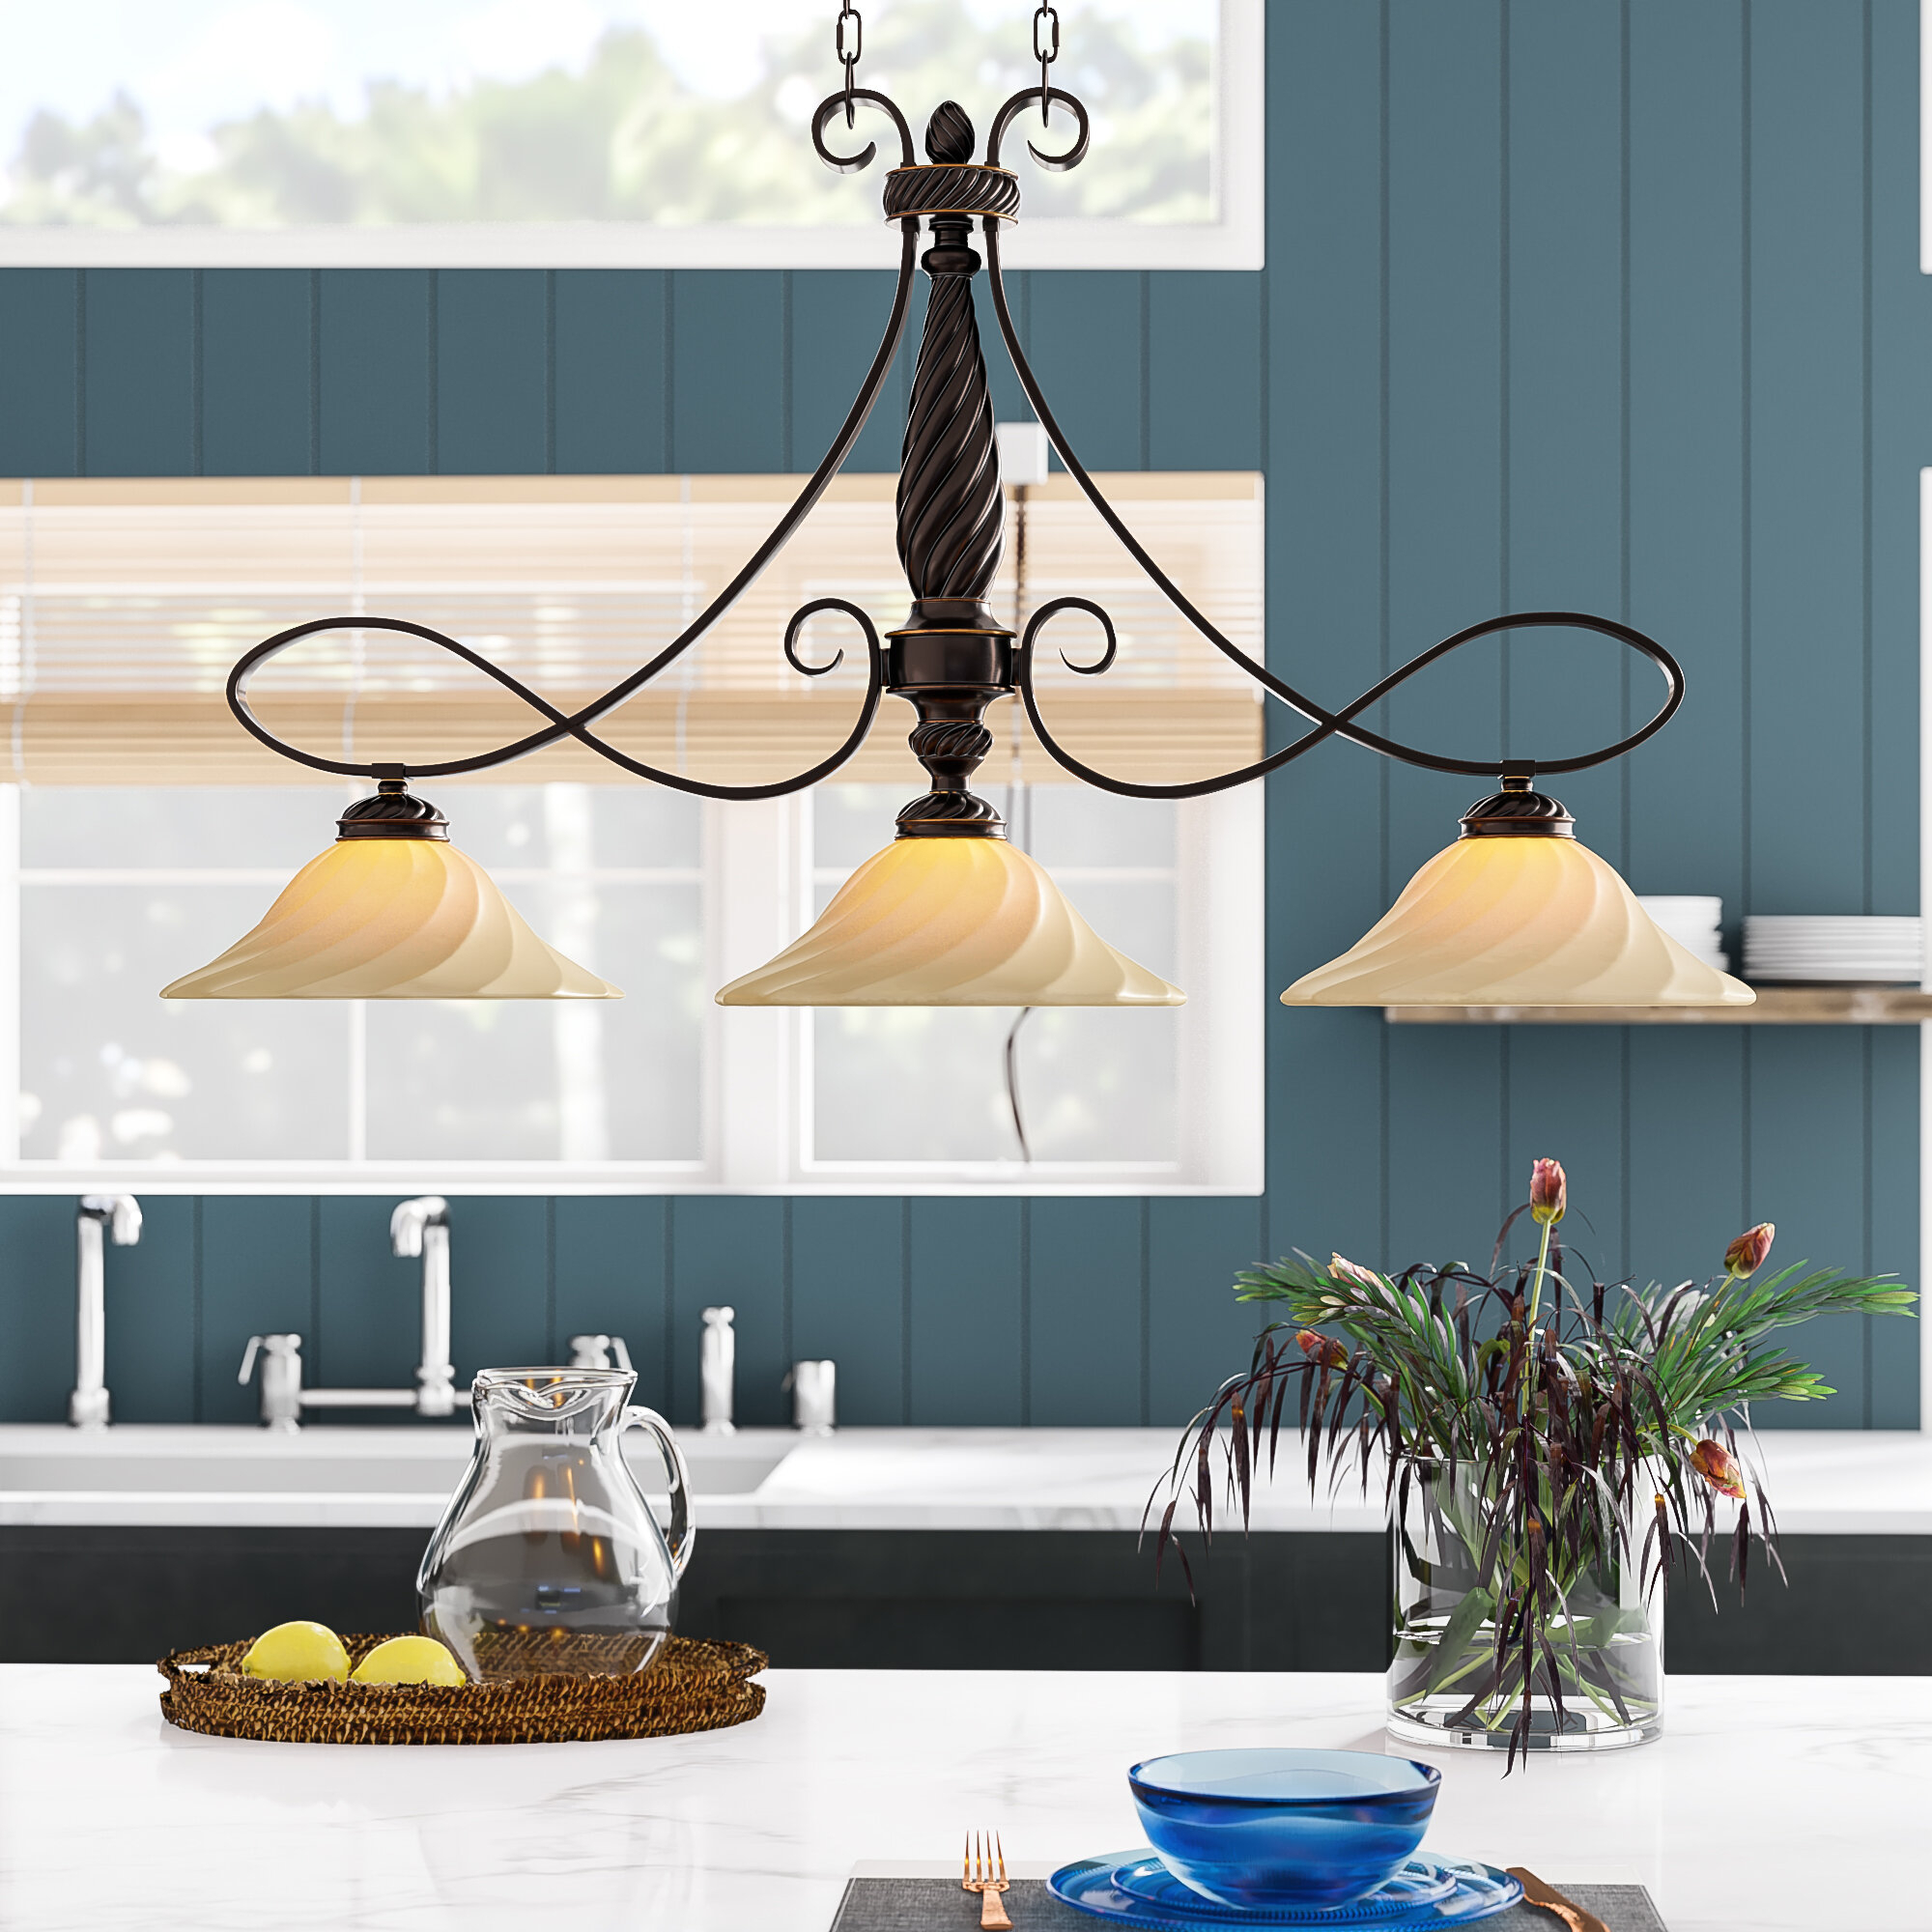 Hoopeston 3 Light Kitchen Island Pendant With Van Horne 3 Light Single Teardrop Pendants (View 17 of 30)